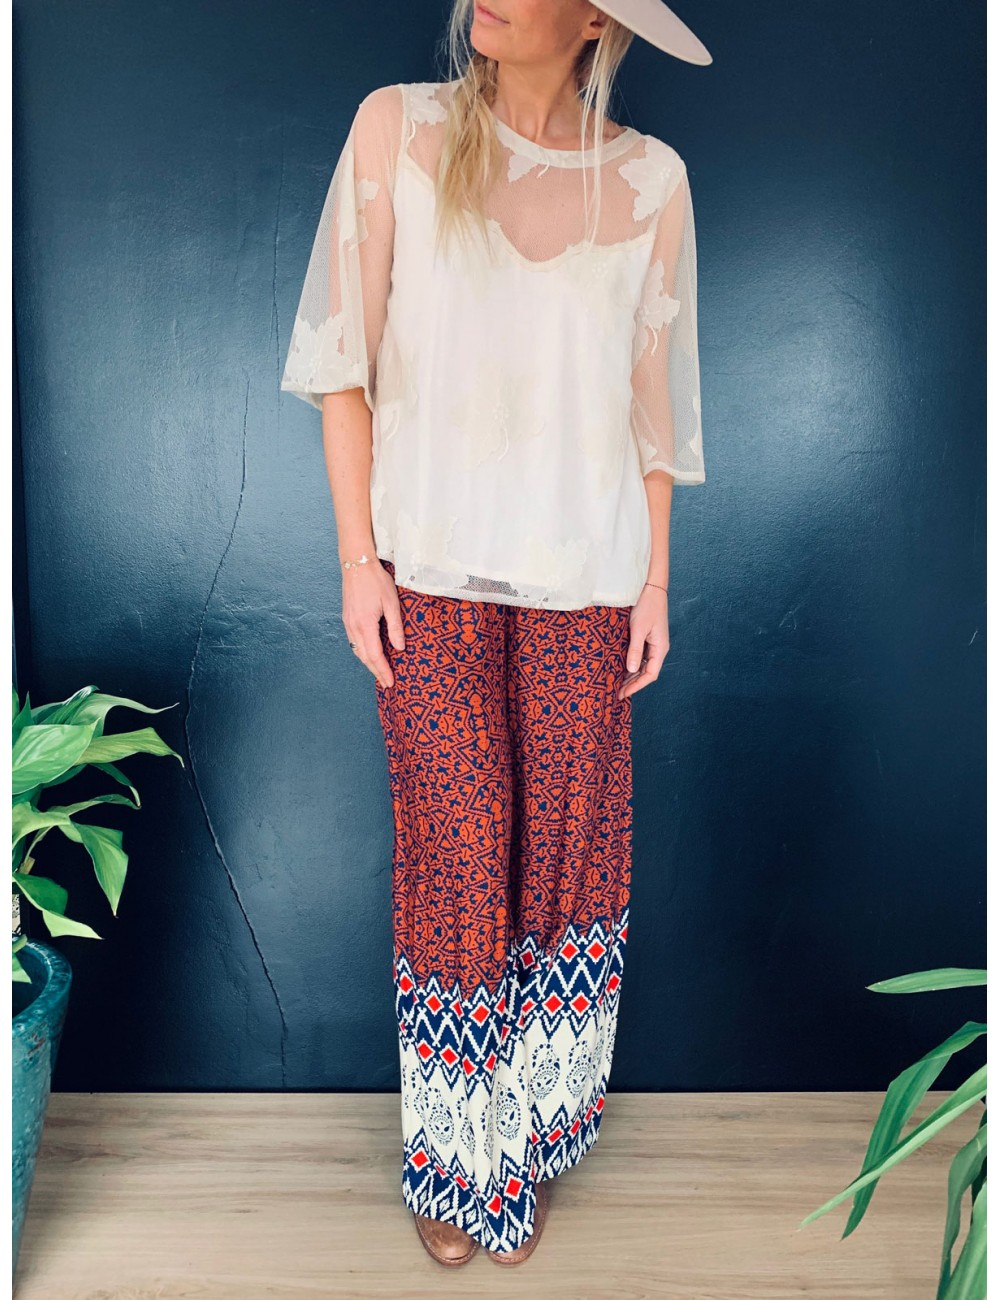 South Pant - Collection Fall in Love 2019 - Ematesse